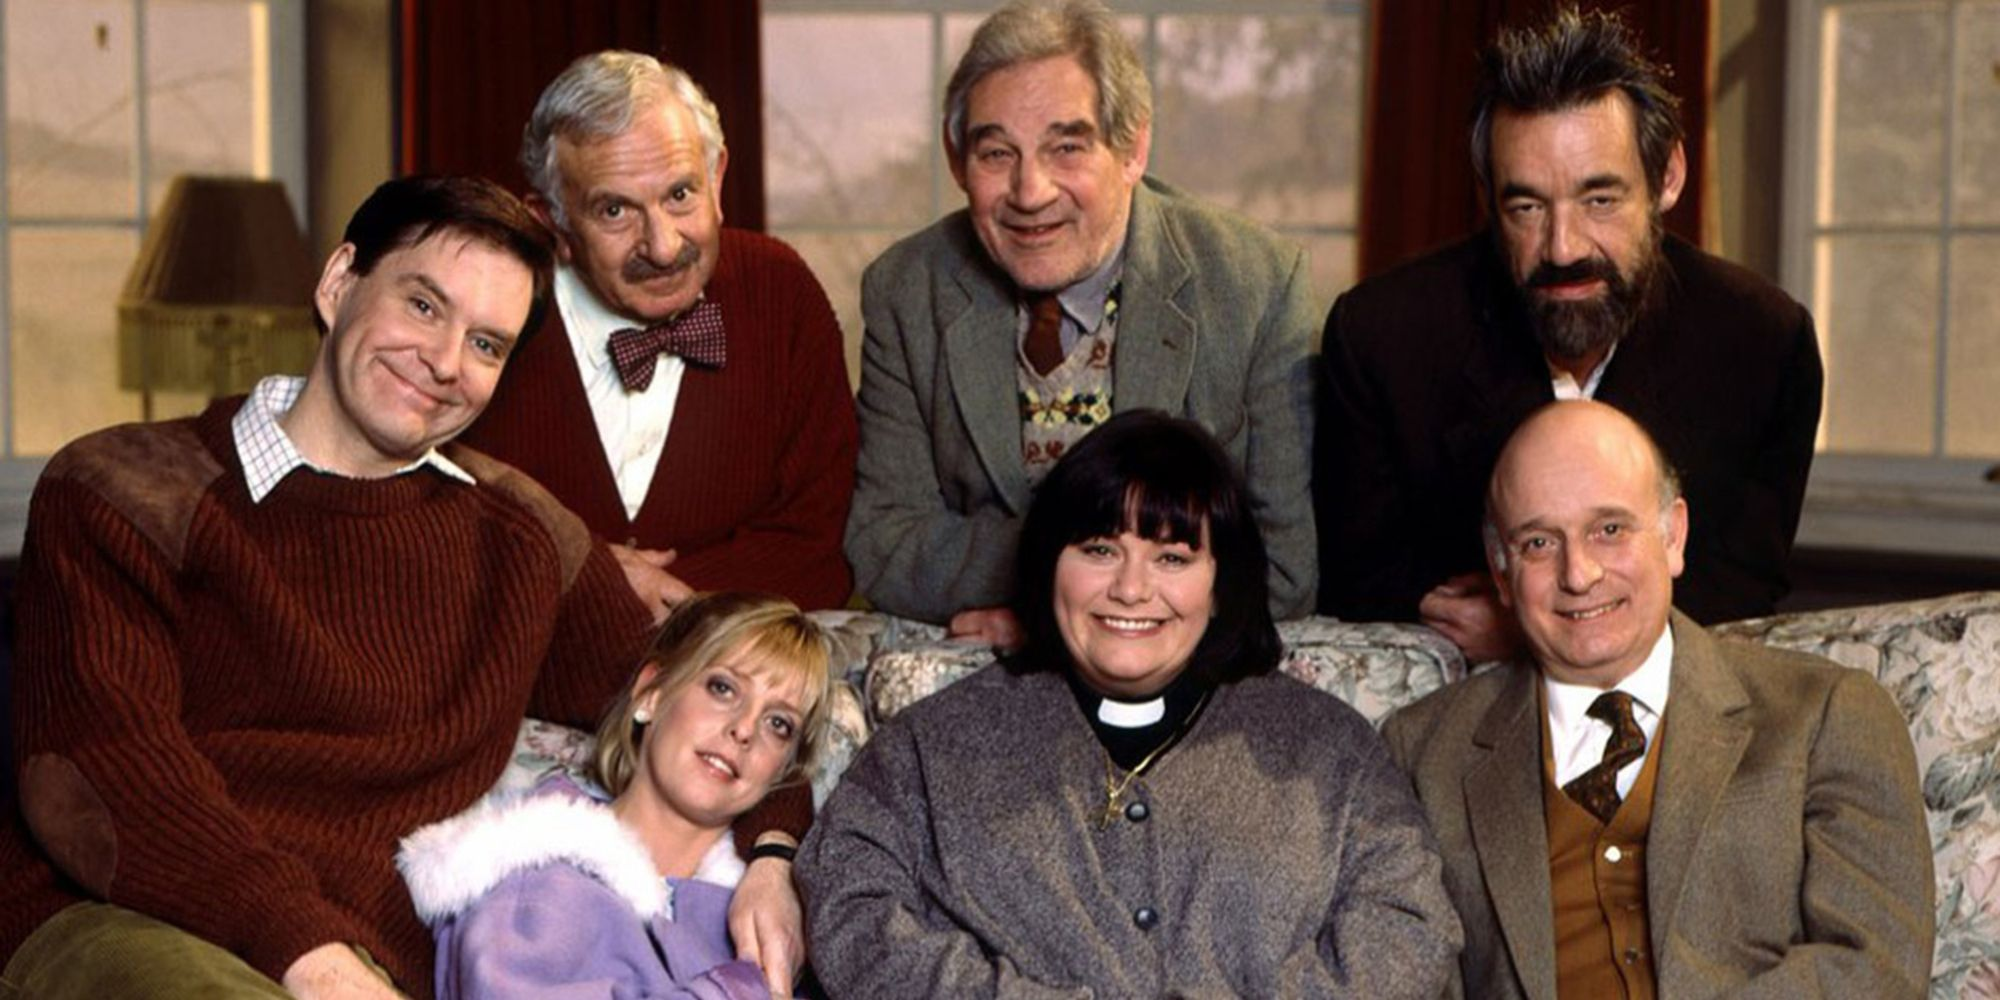 The Vicar Of Dibley: Cast & Characters